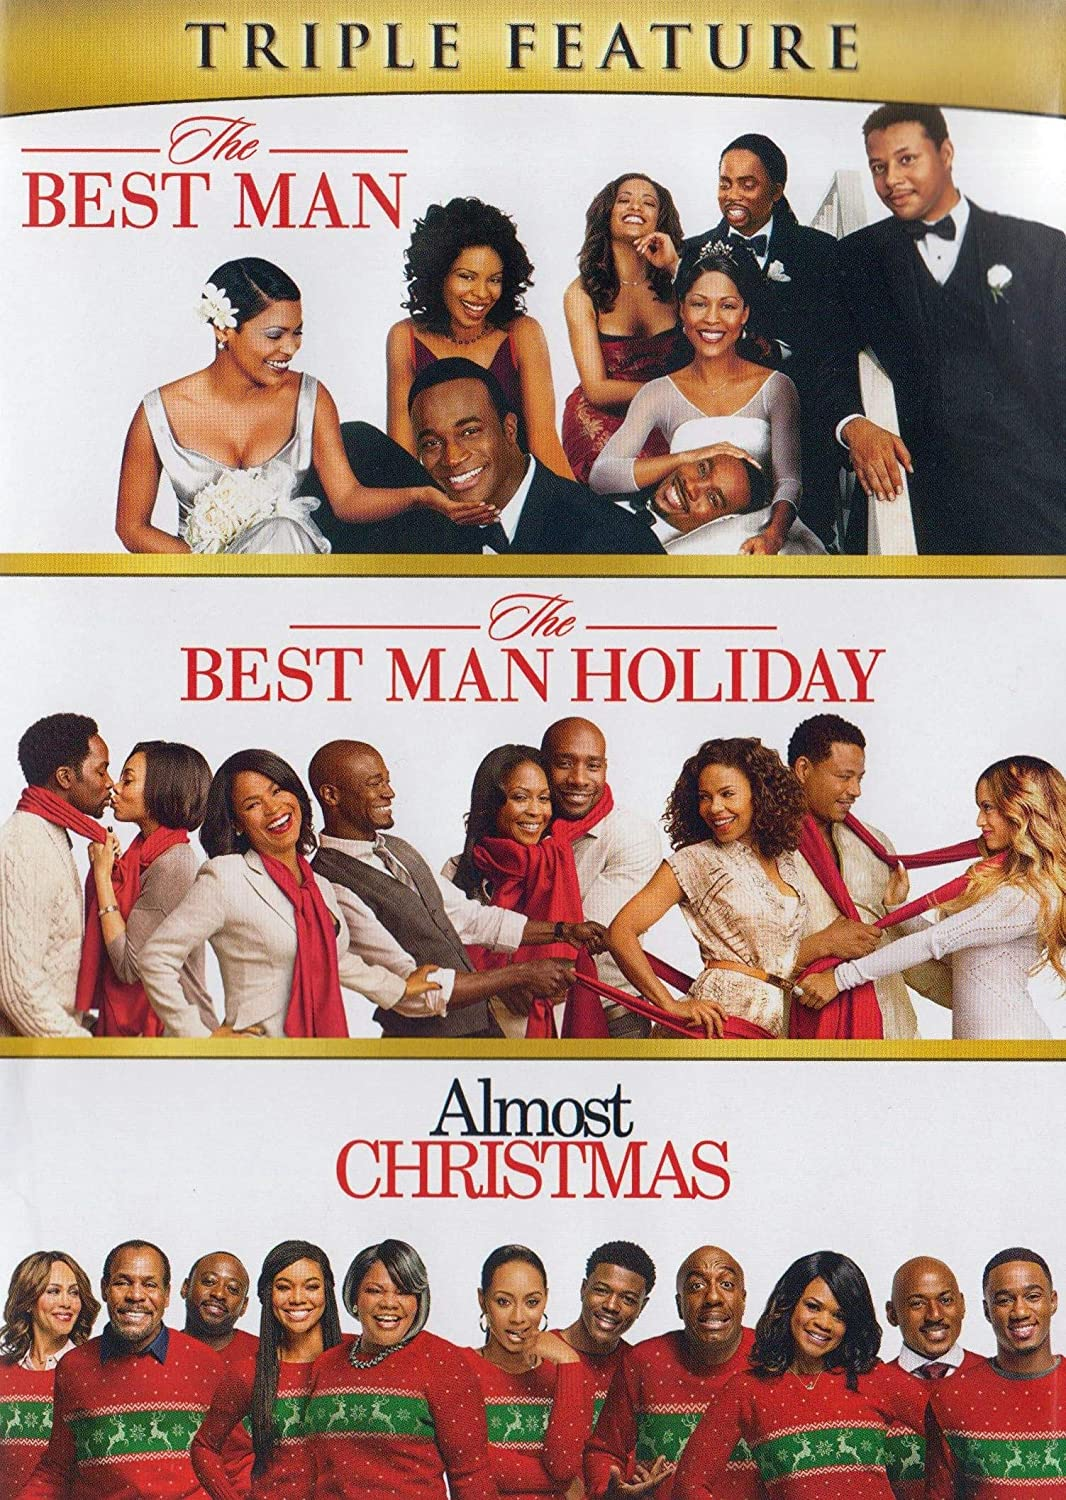 Almost Christmas Actor Omar.Amazon Com The Best Man The Best Man Holiday Almost